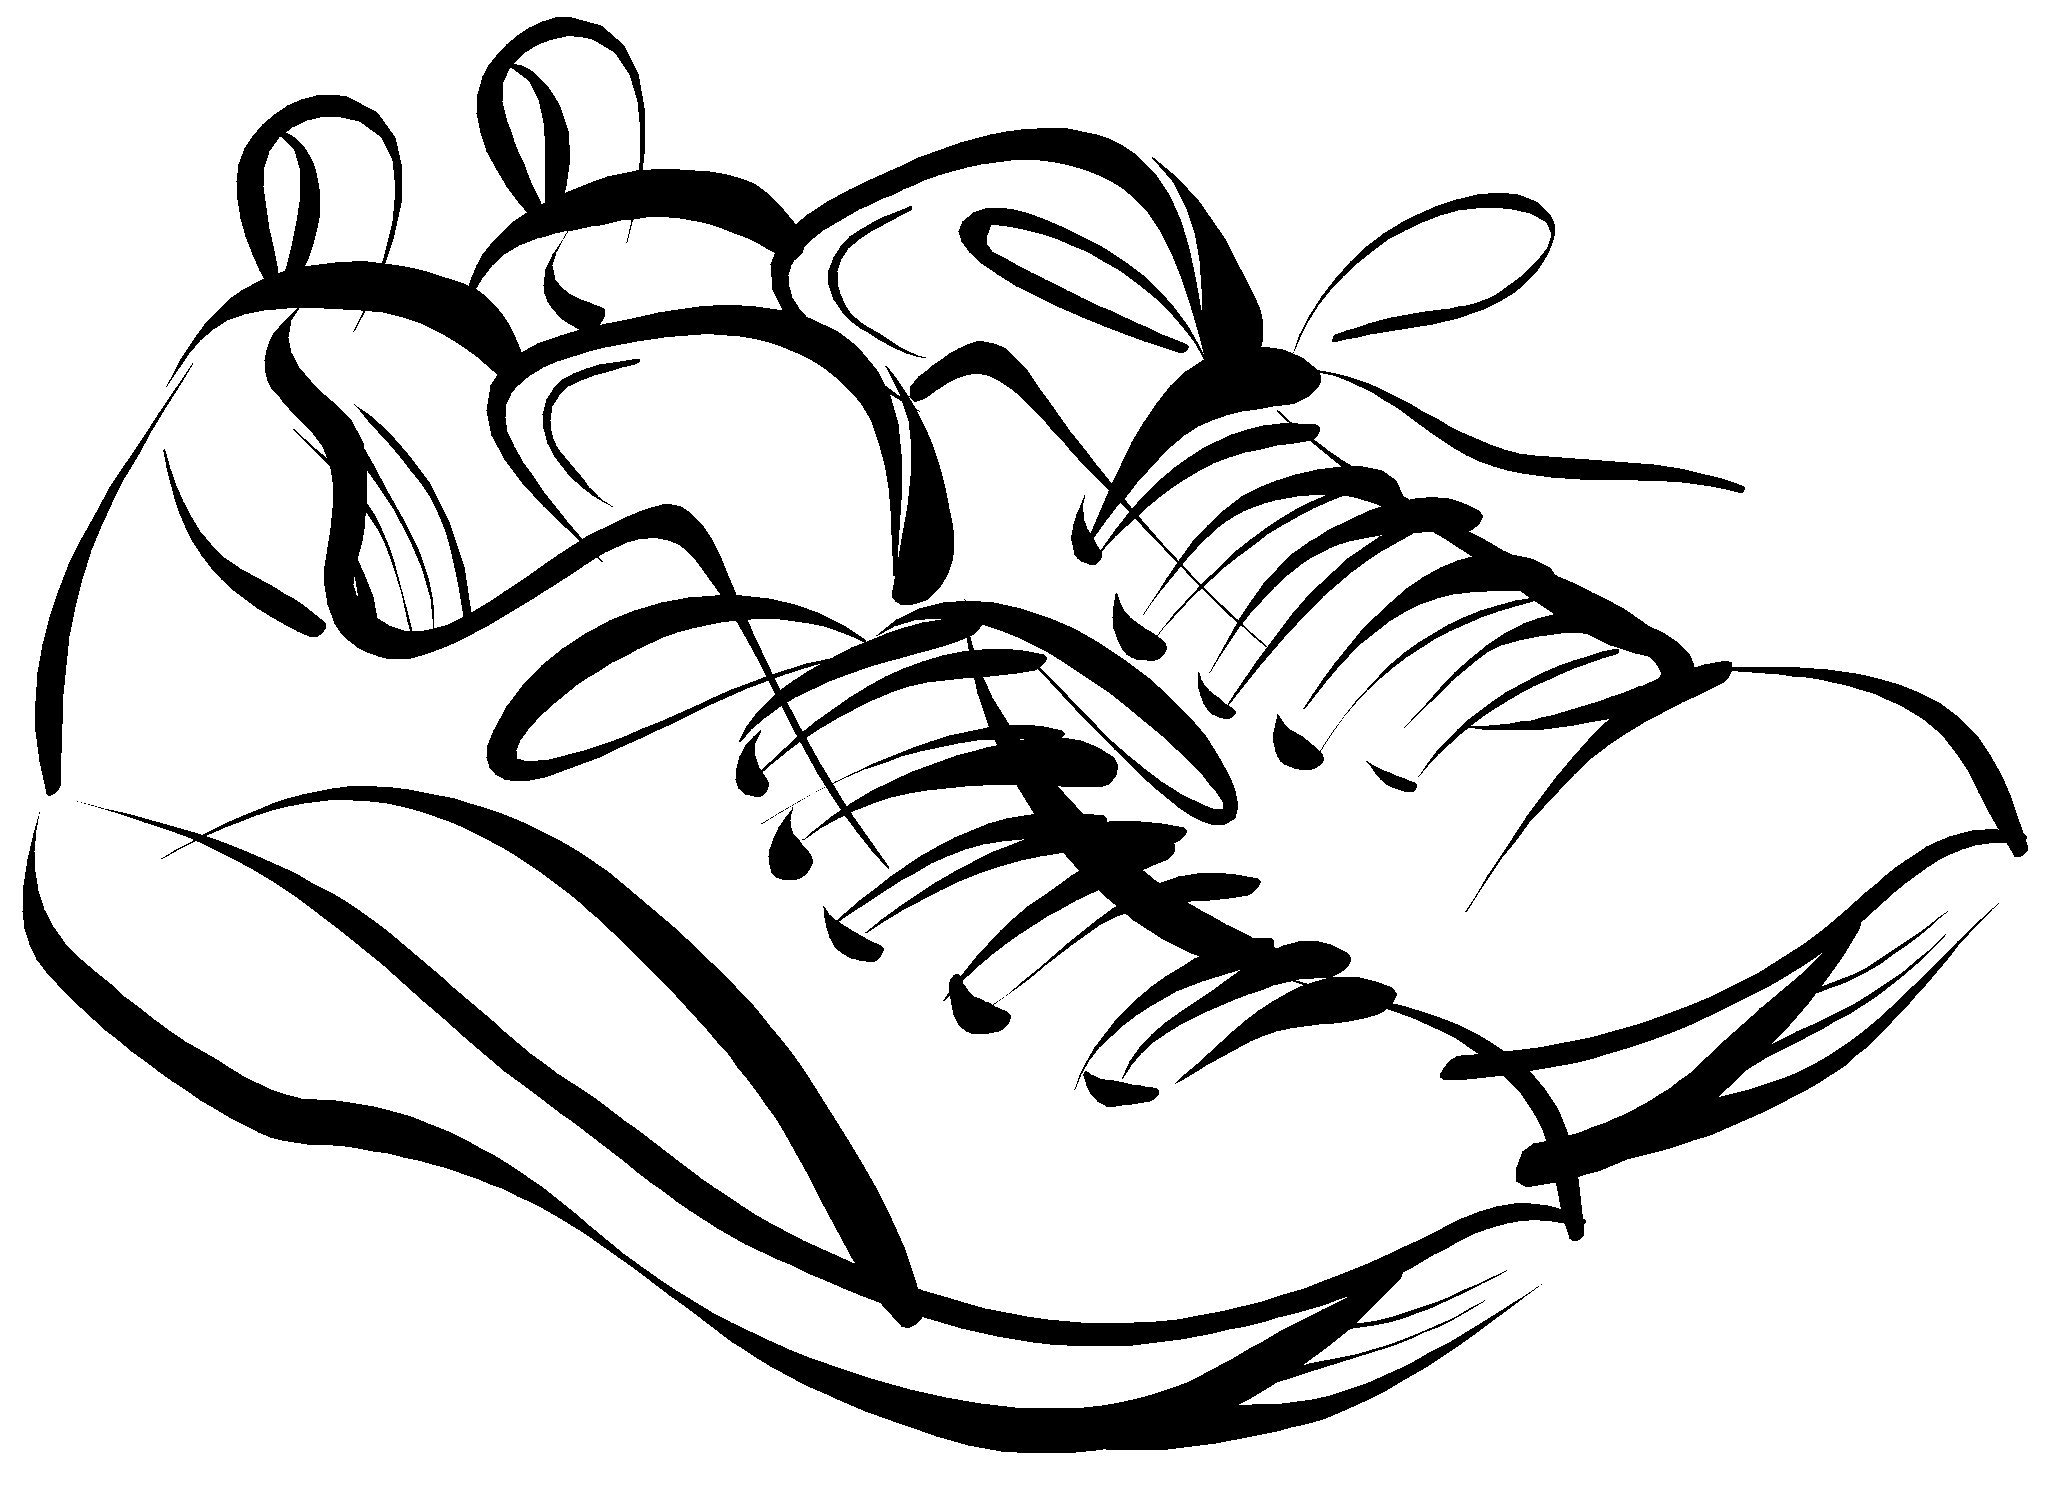 Free Clip art of Tennis Shoes Clipart #3579 Best Black and White.